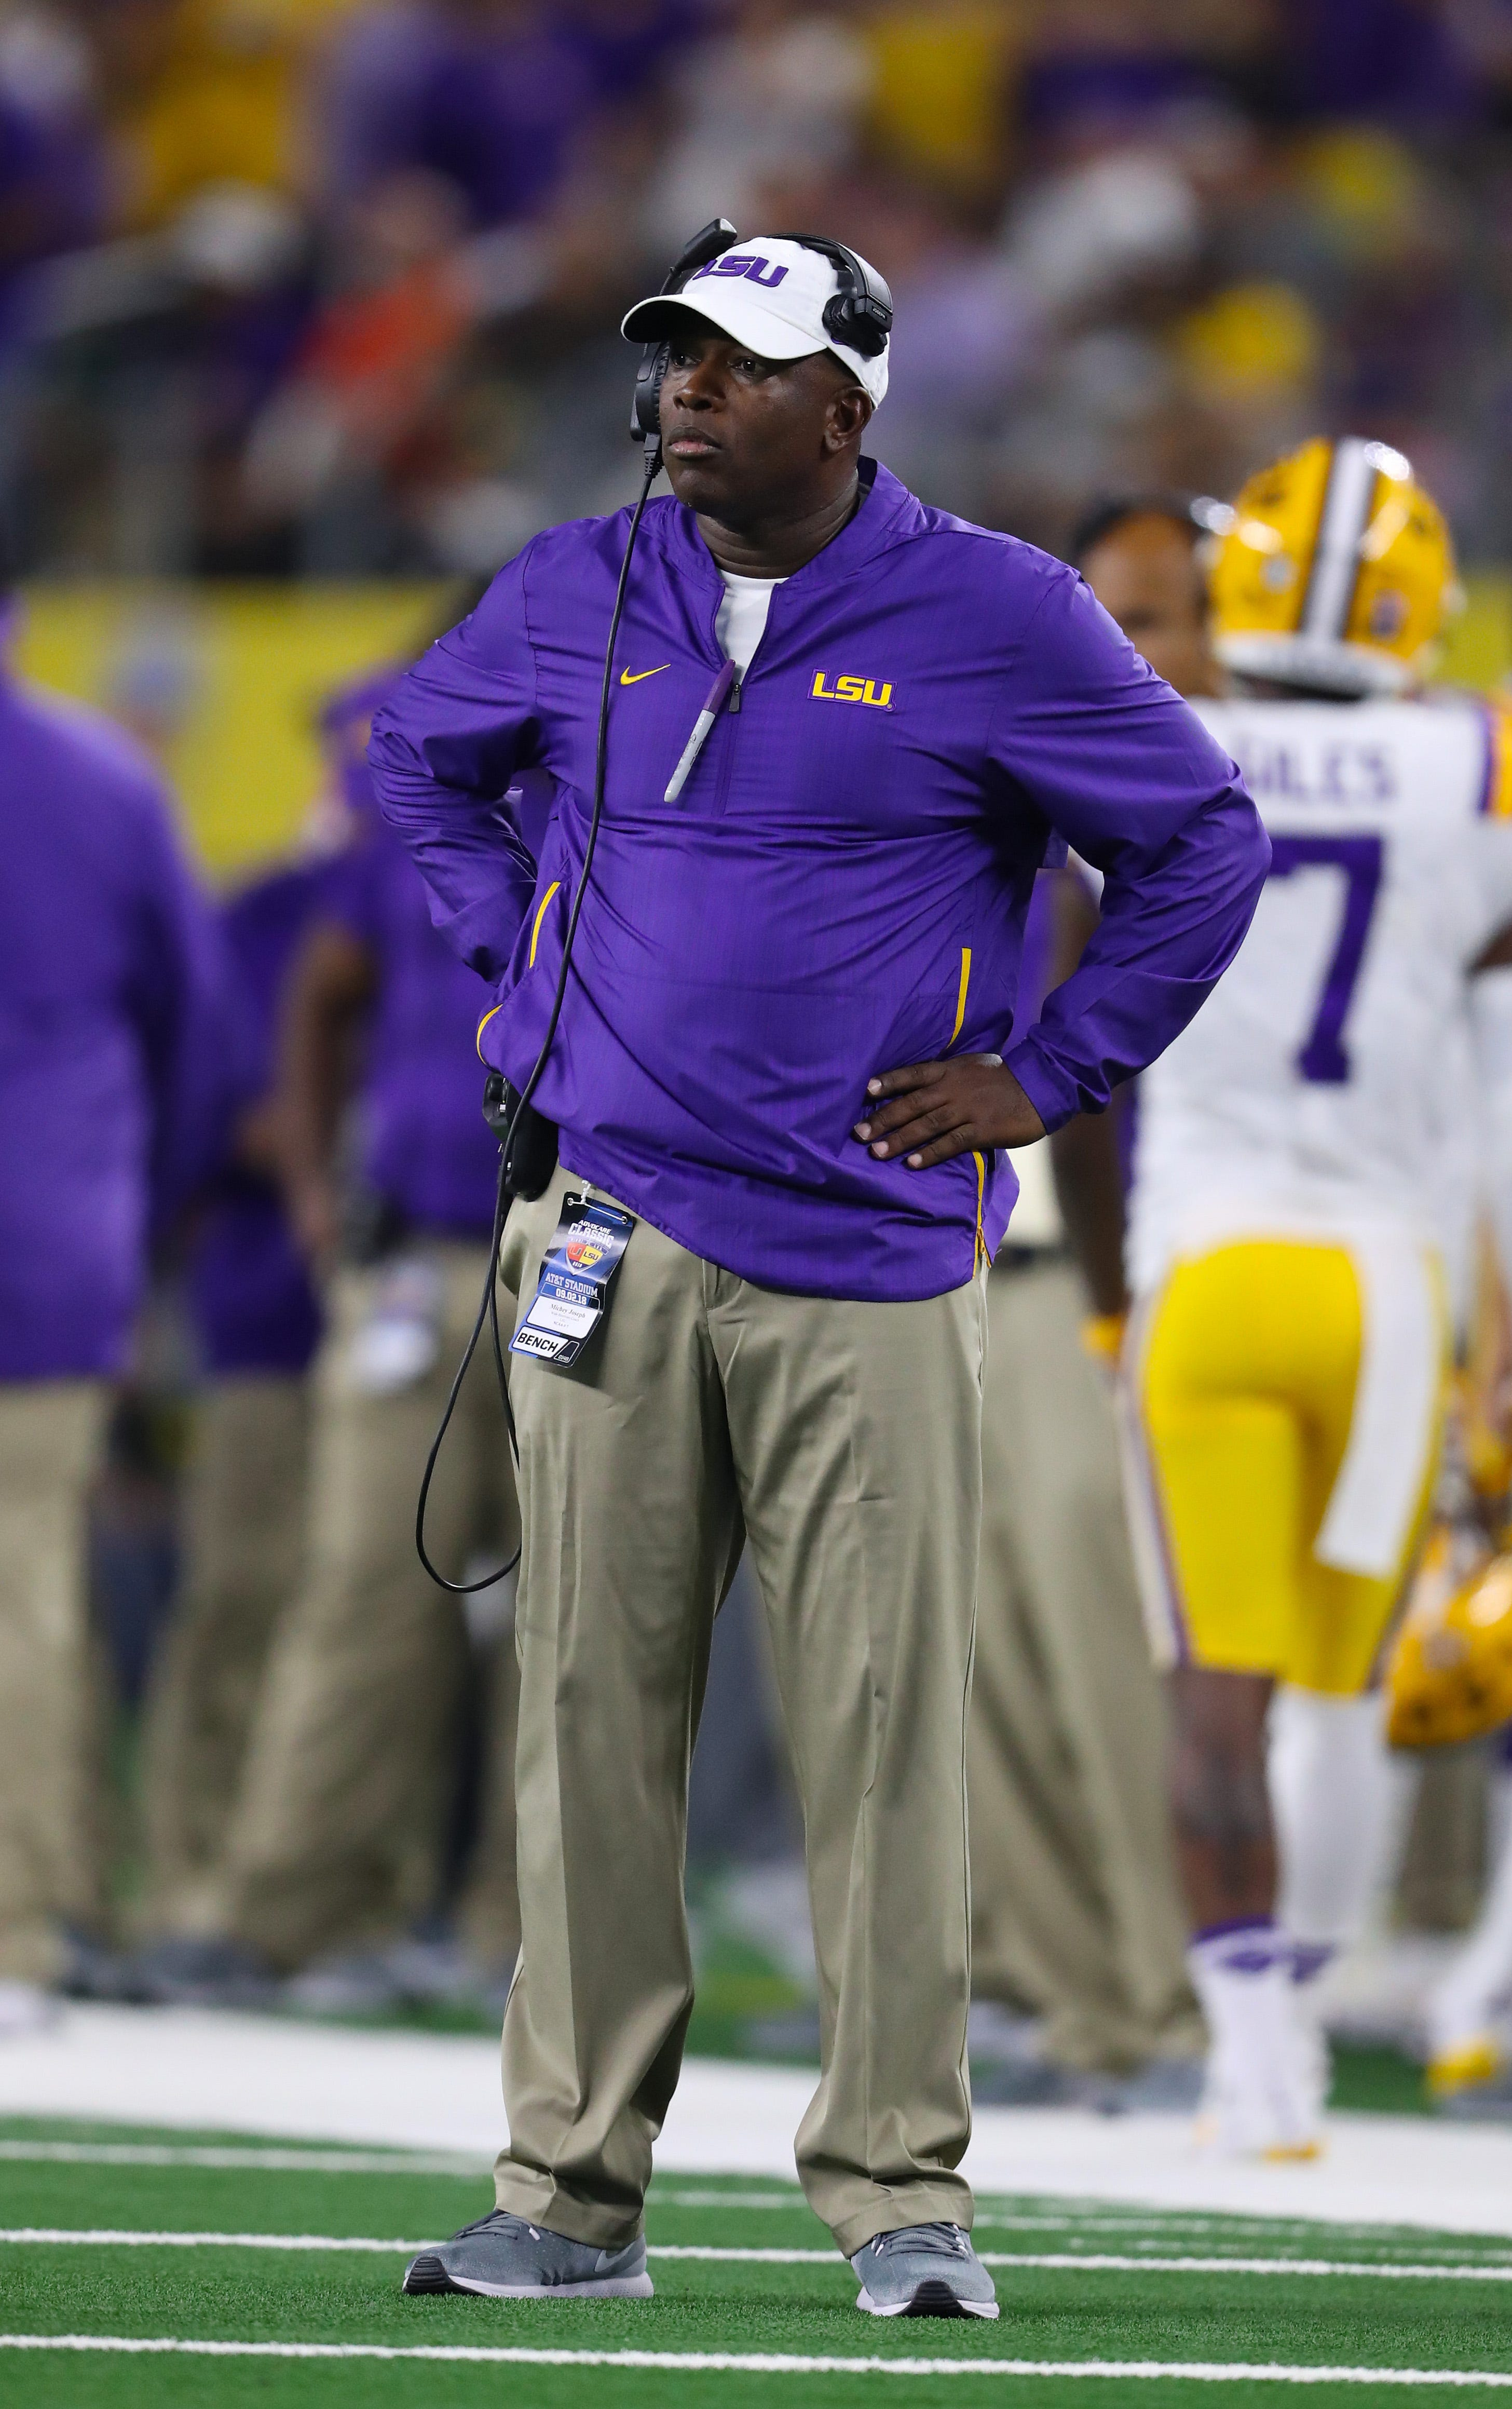 LSU wide receivers coach Mickey Joseph on the sidelines during the game against the Miami Hurricanes at AT&T Stadium on Sep 2, 2018.